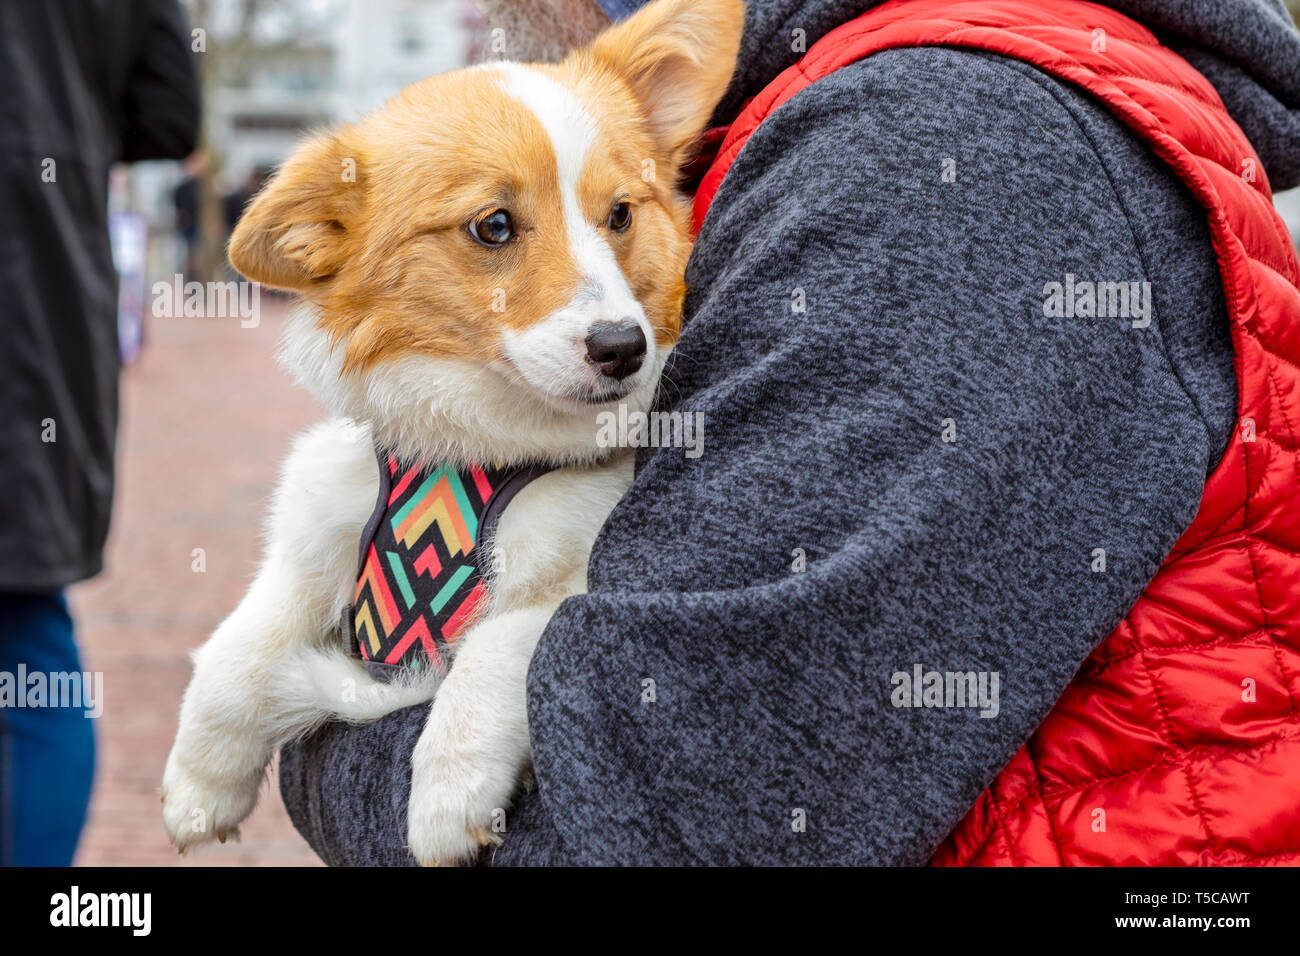 A happy, contented dog sits on it's owner's lap. Stock Photo